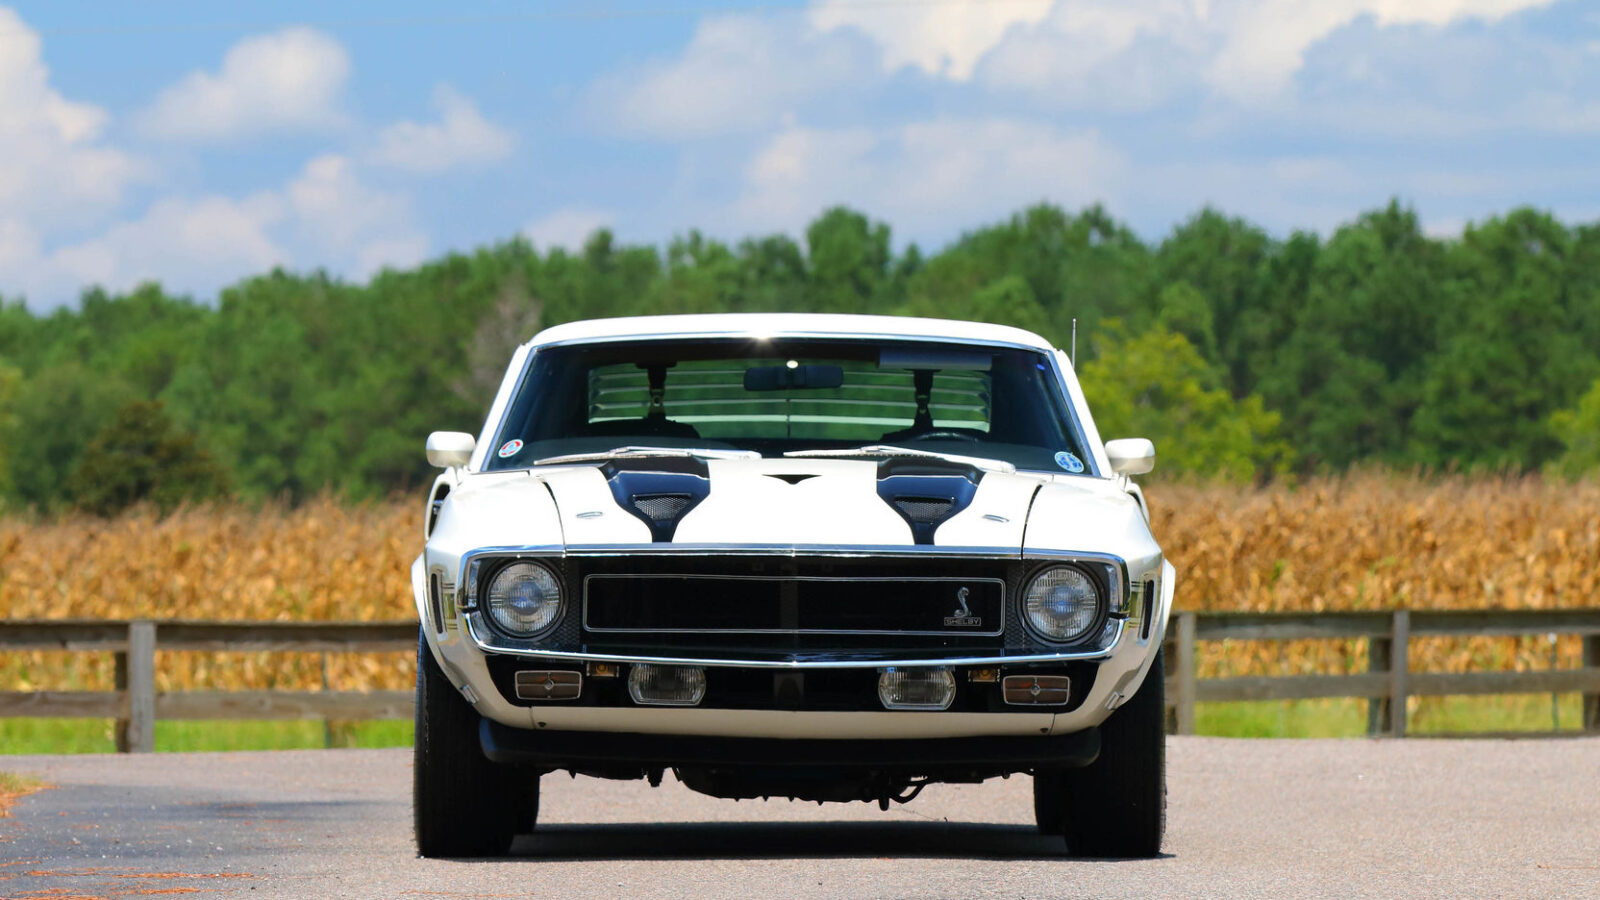 Shelby GT350 11 1600x900 - 1970 Shelby GT350 Fastback